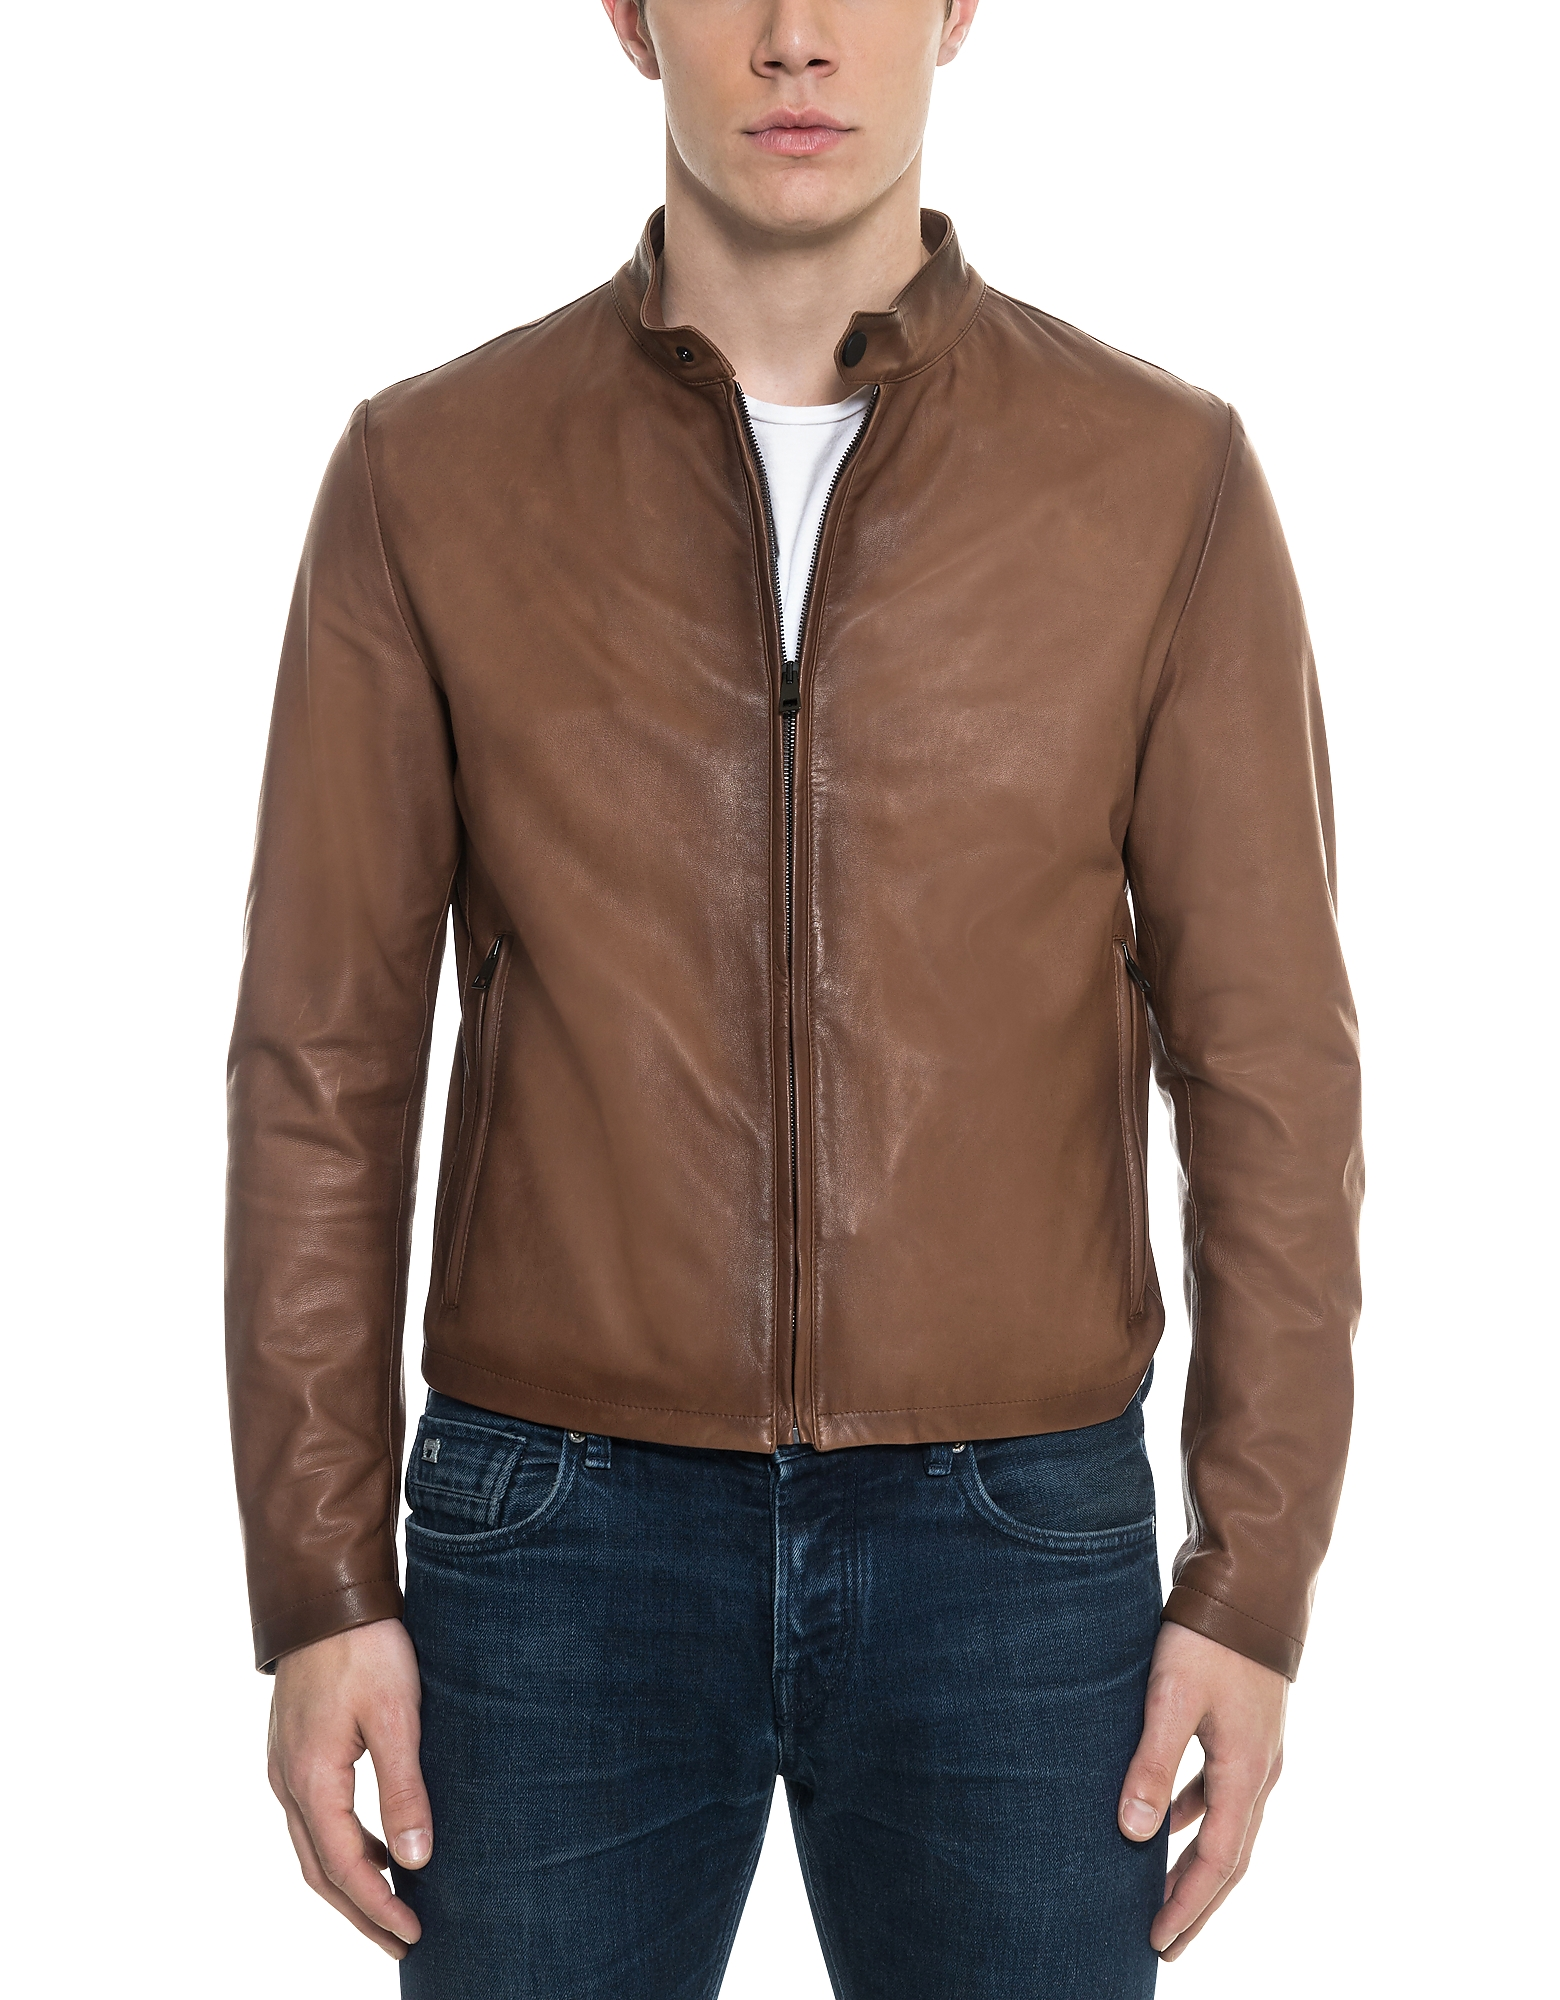 Forzieri Leather Jackets, Brown Leather Men's Biker Jacket